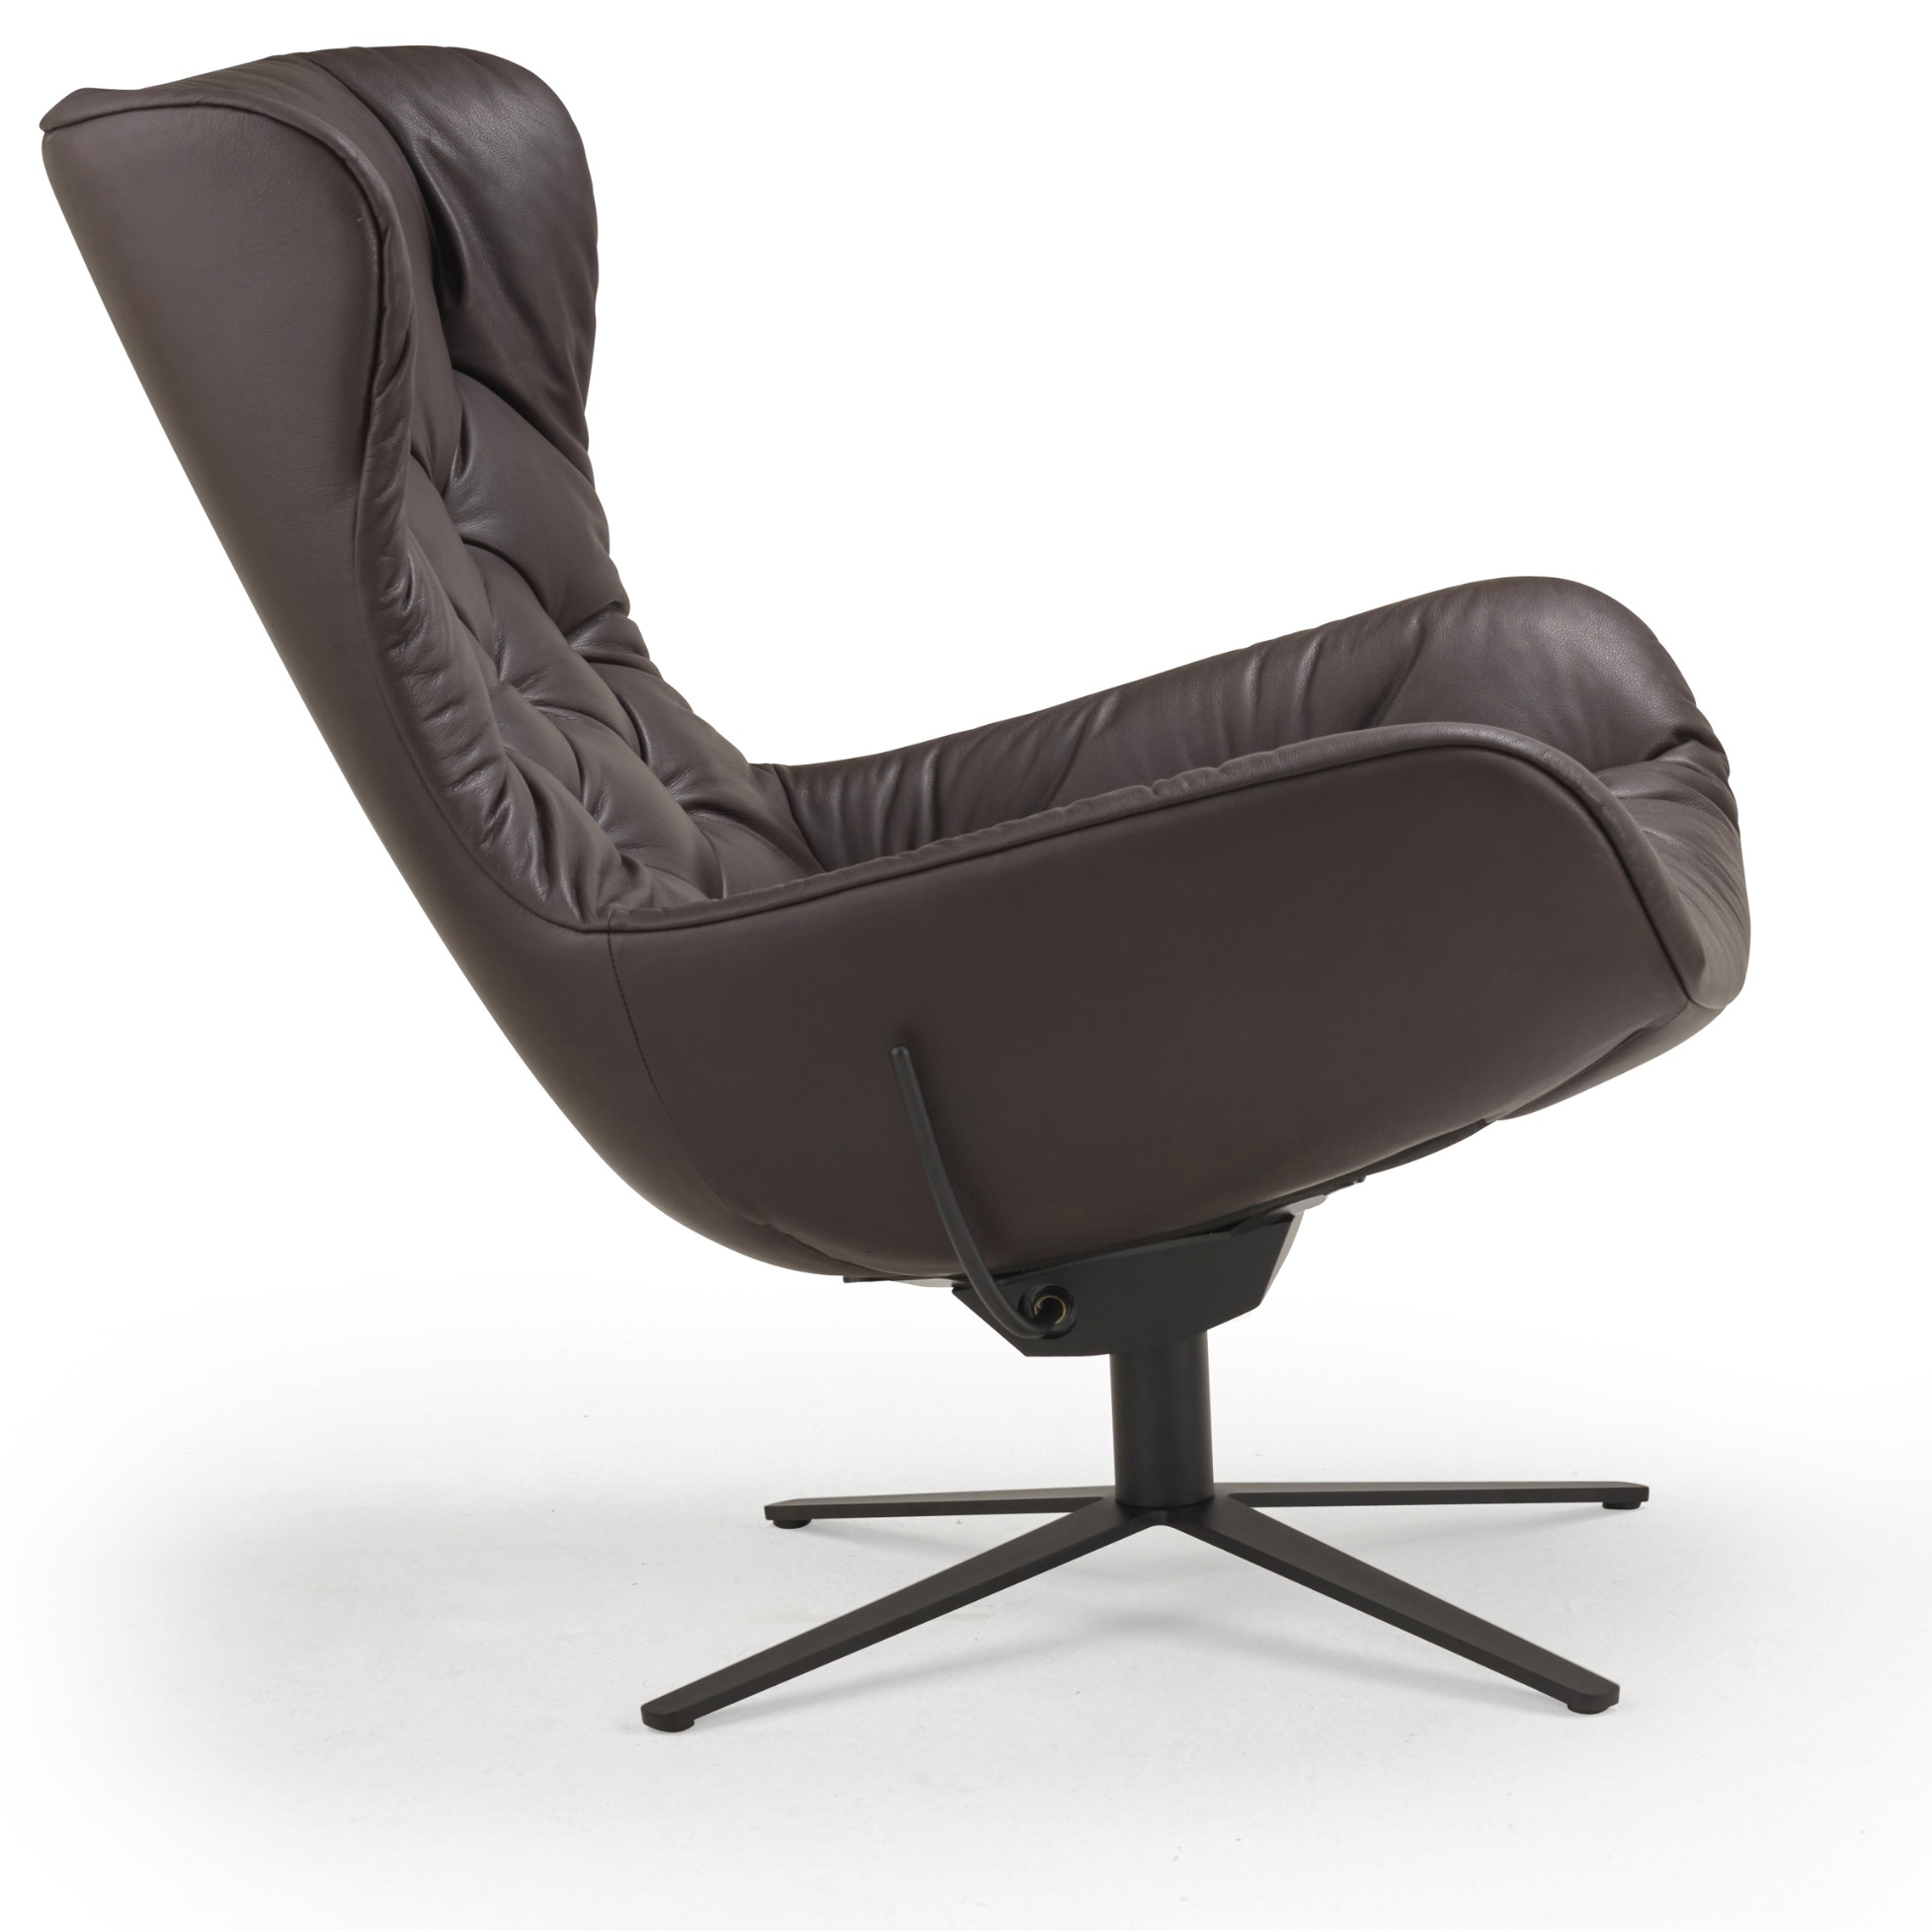 Freifrau Sessel Leya Leya Wingback Chair By Freifrau With Tilt Mechanism